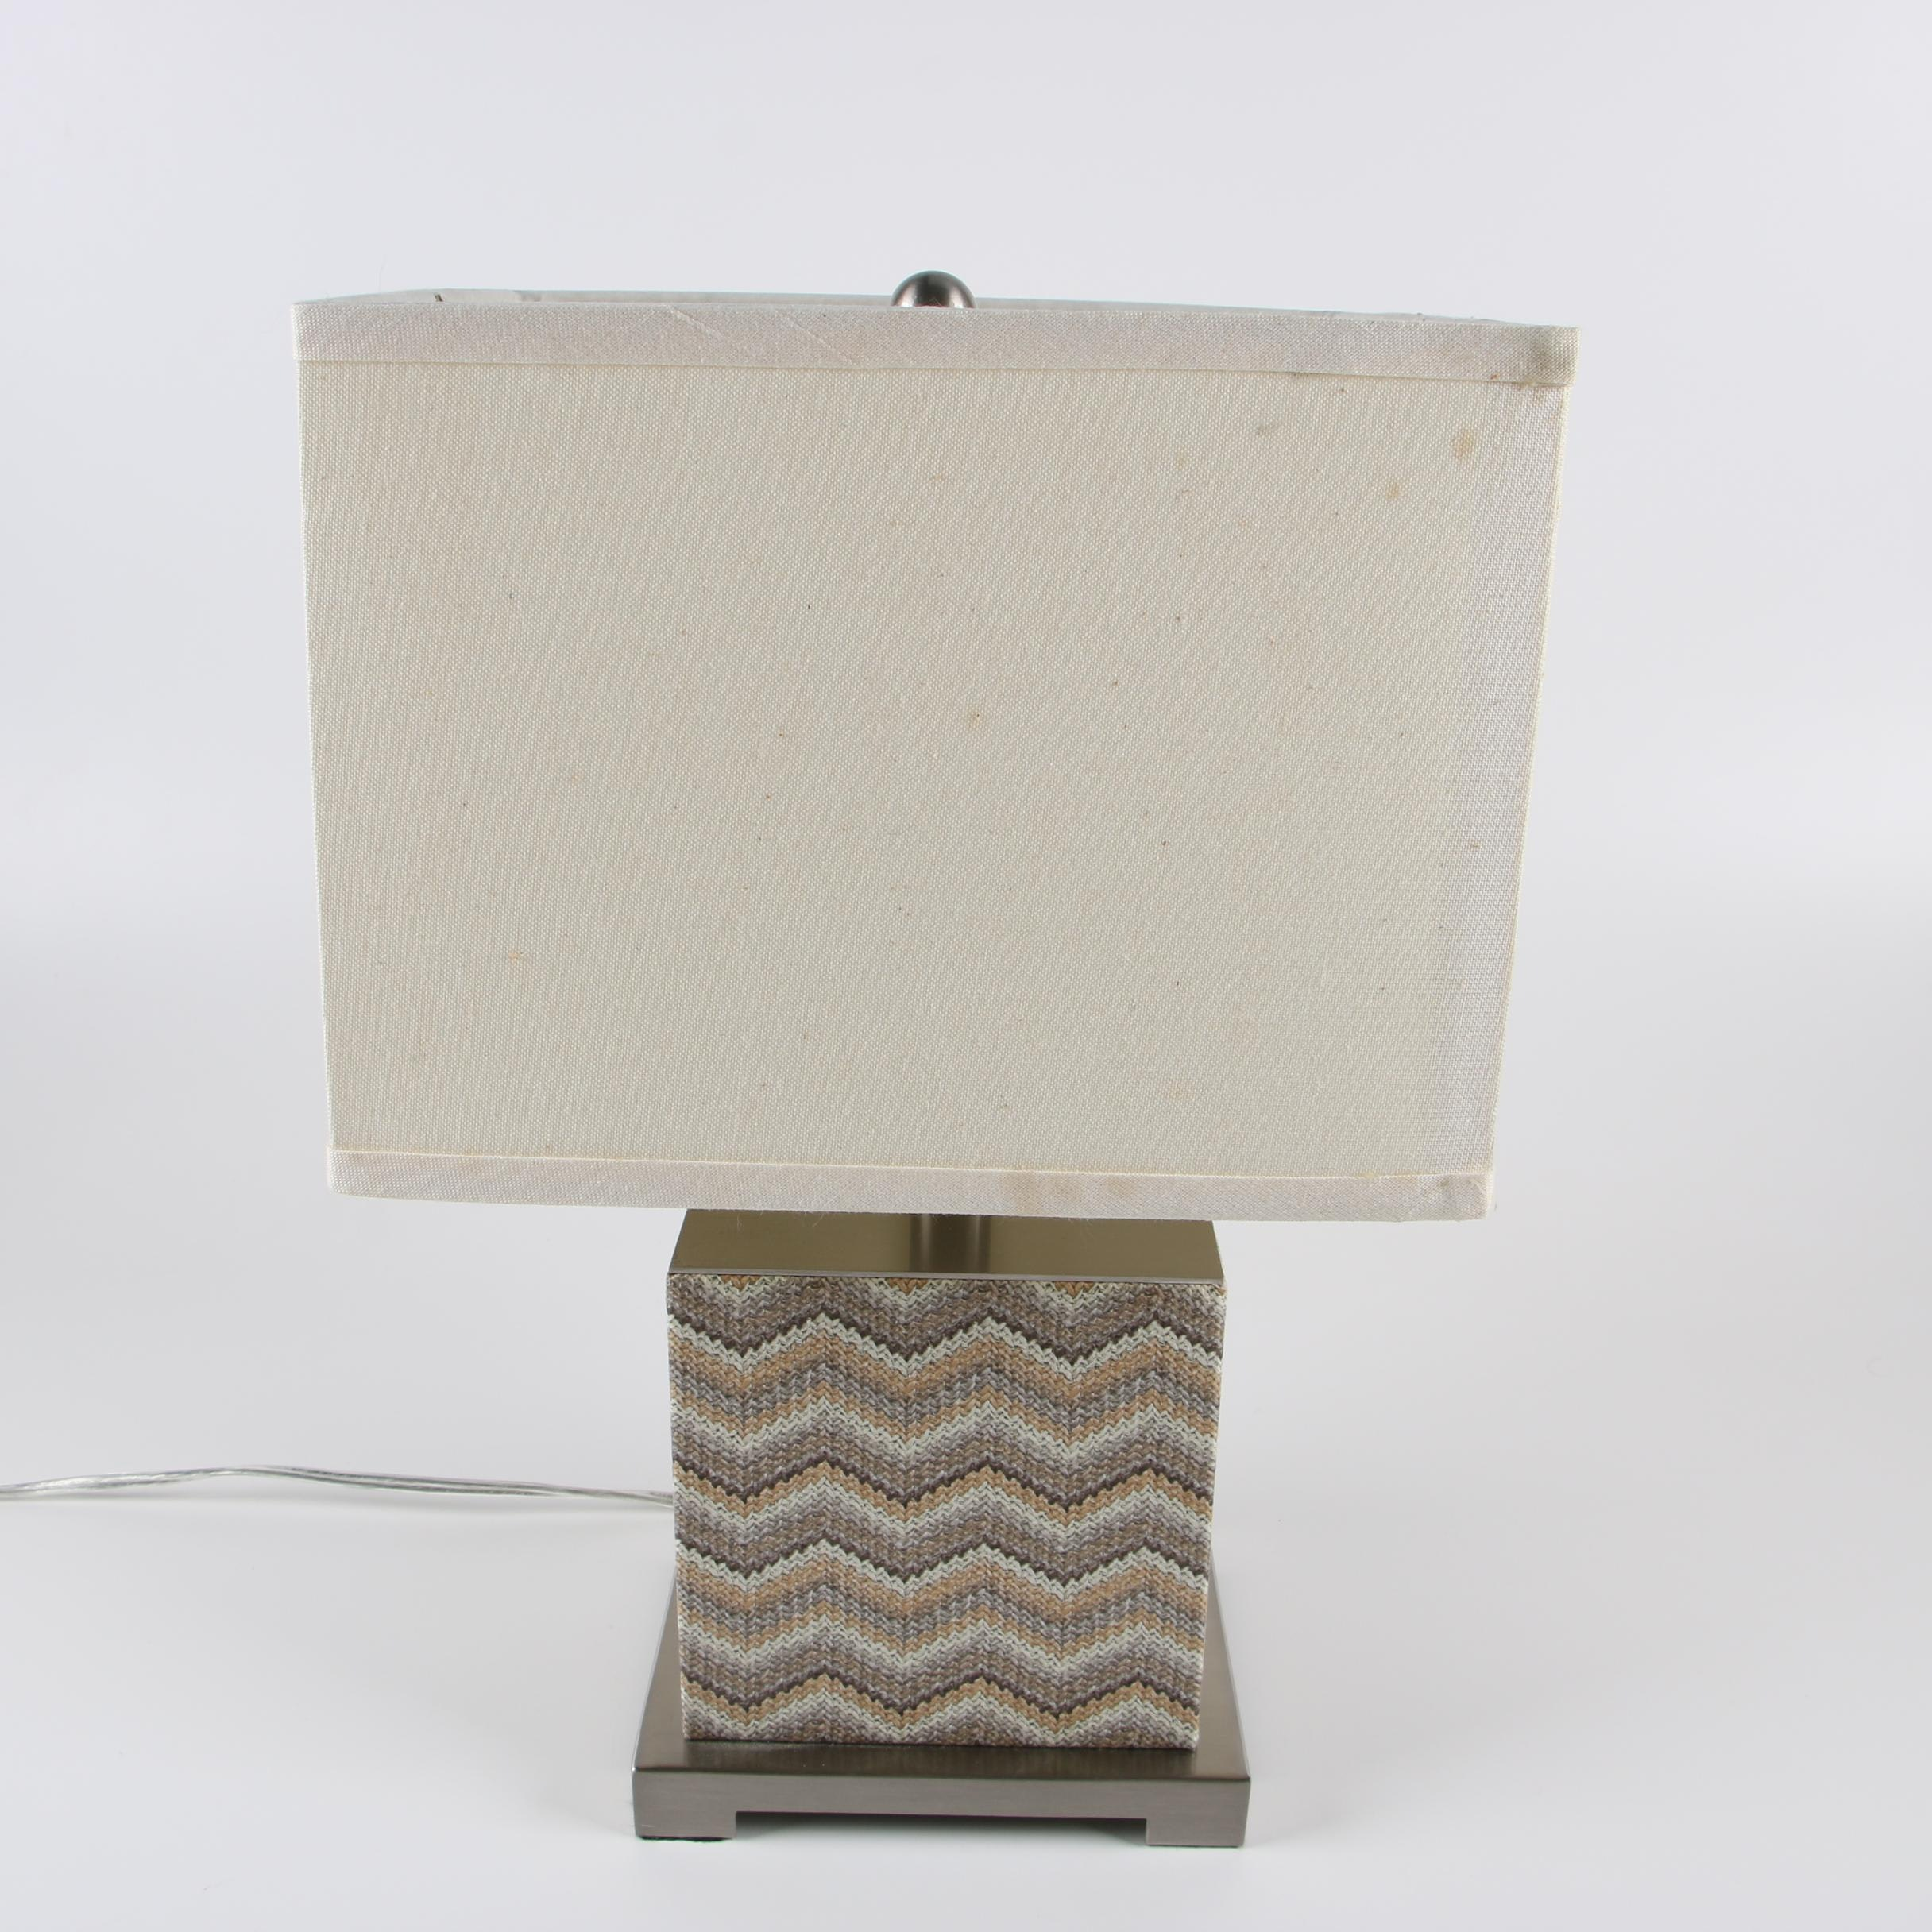 Chevron Woven Overlay Brucked Metal Block Table Lamp with Shade